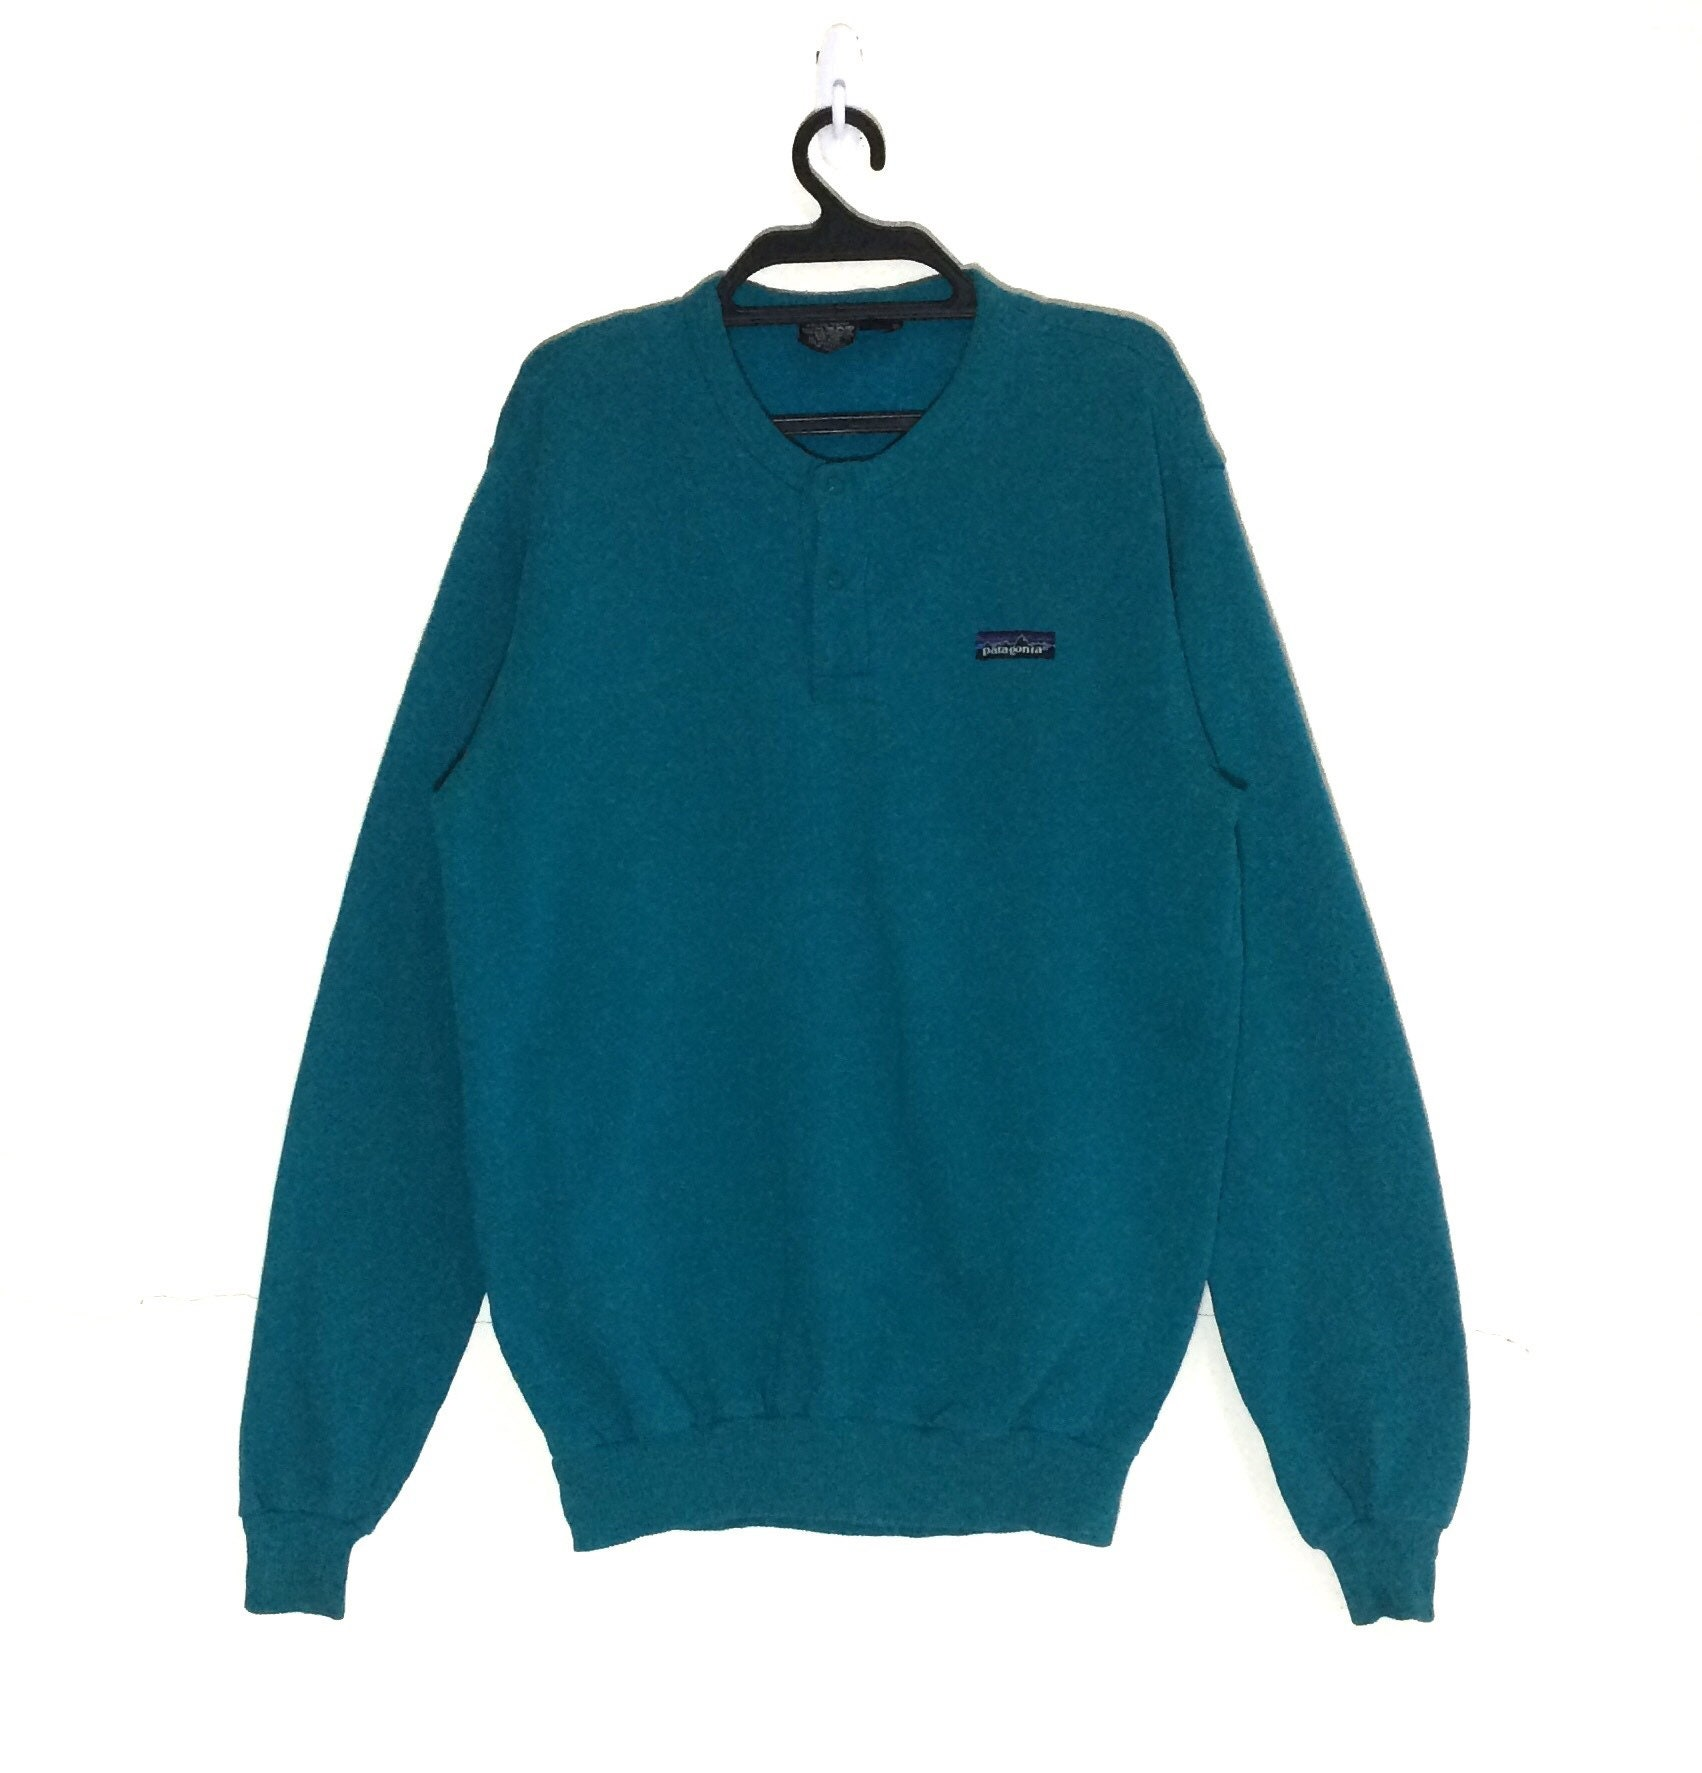 2a1ef15edeb52 Rare!!! Vintage PATAGONIA Sweatshirt Vtg Outdoor Pullover Crewneck Jacket M  size Turquoise Colour